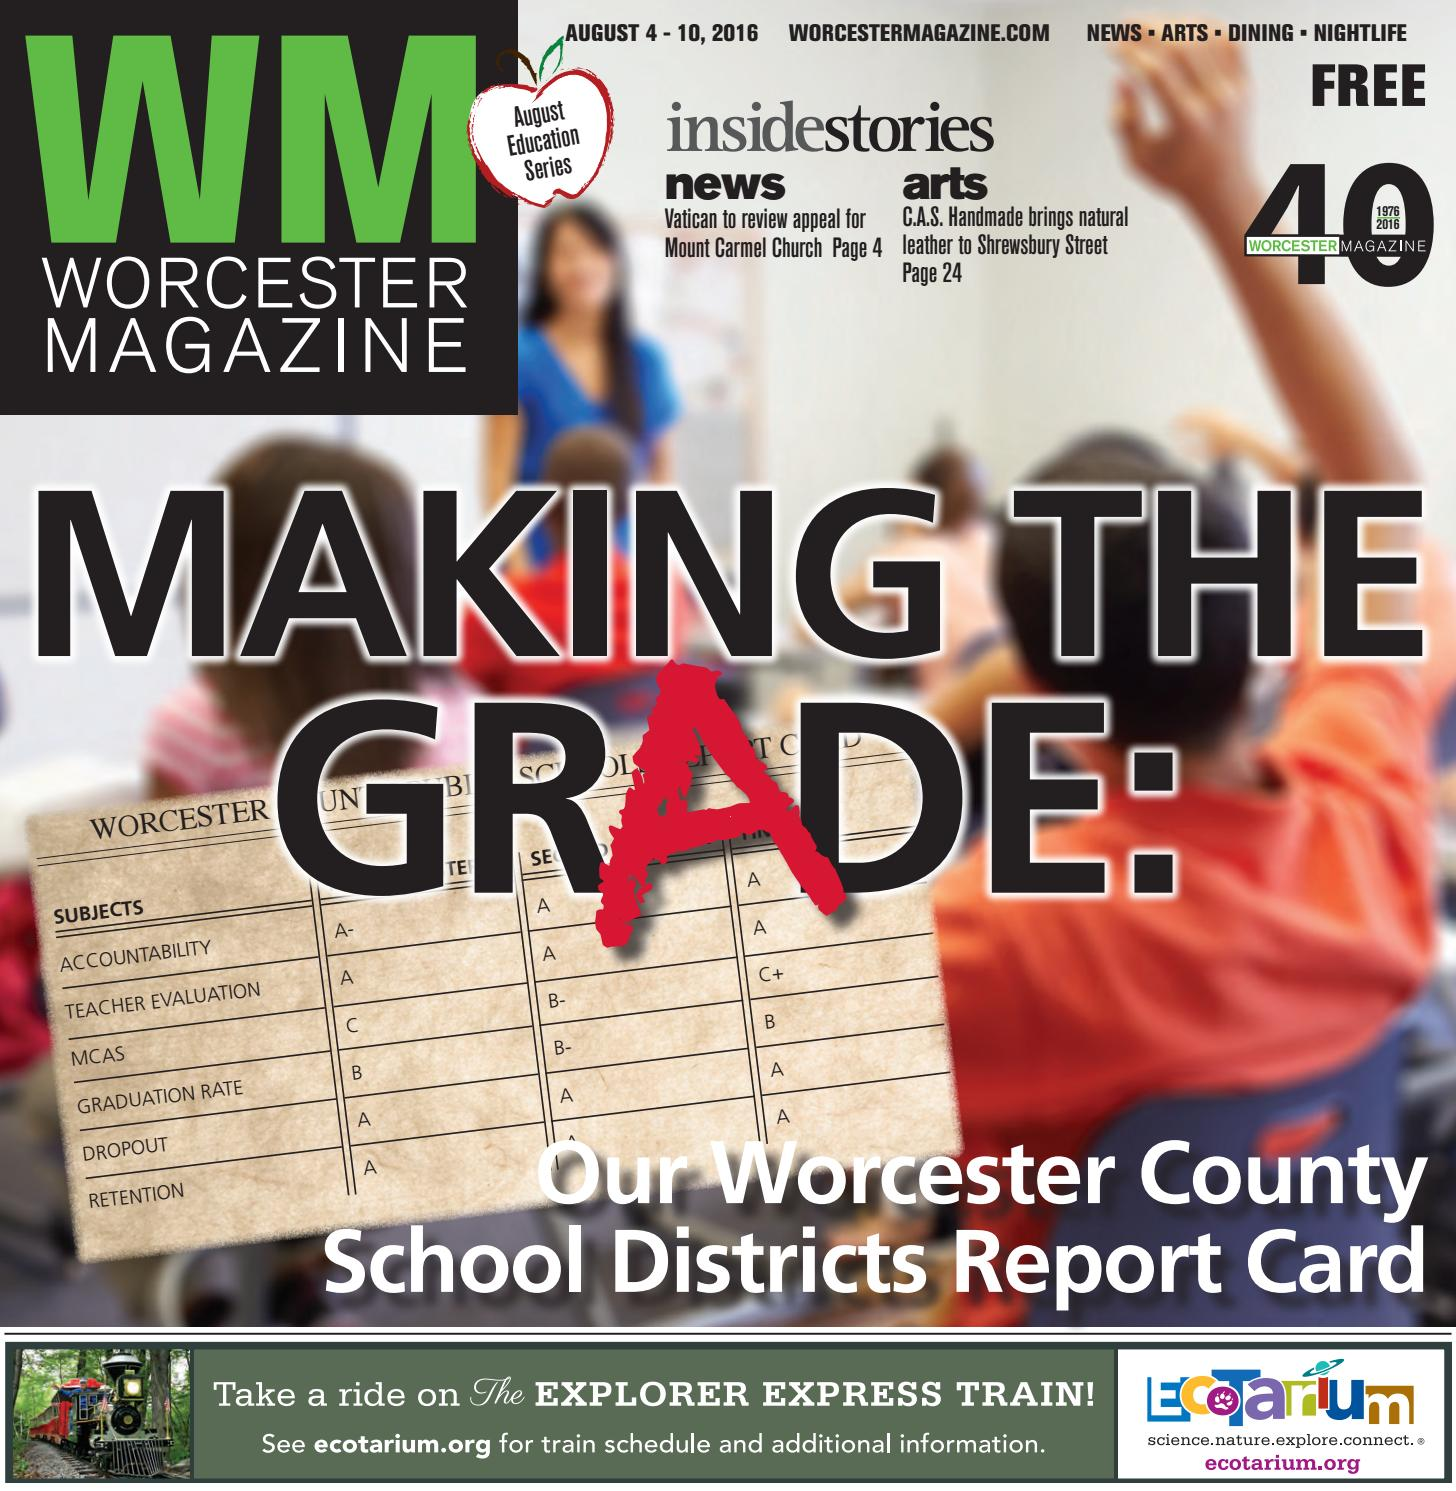 Worcester Magazine August 4 - 10, 2016 by Worcester Magazine